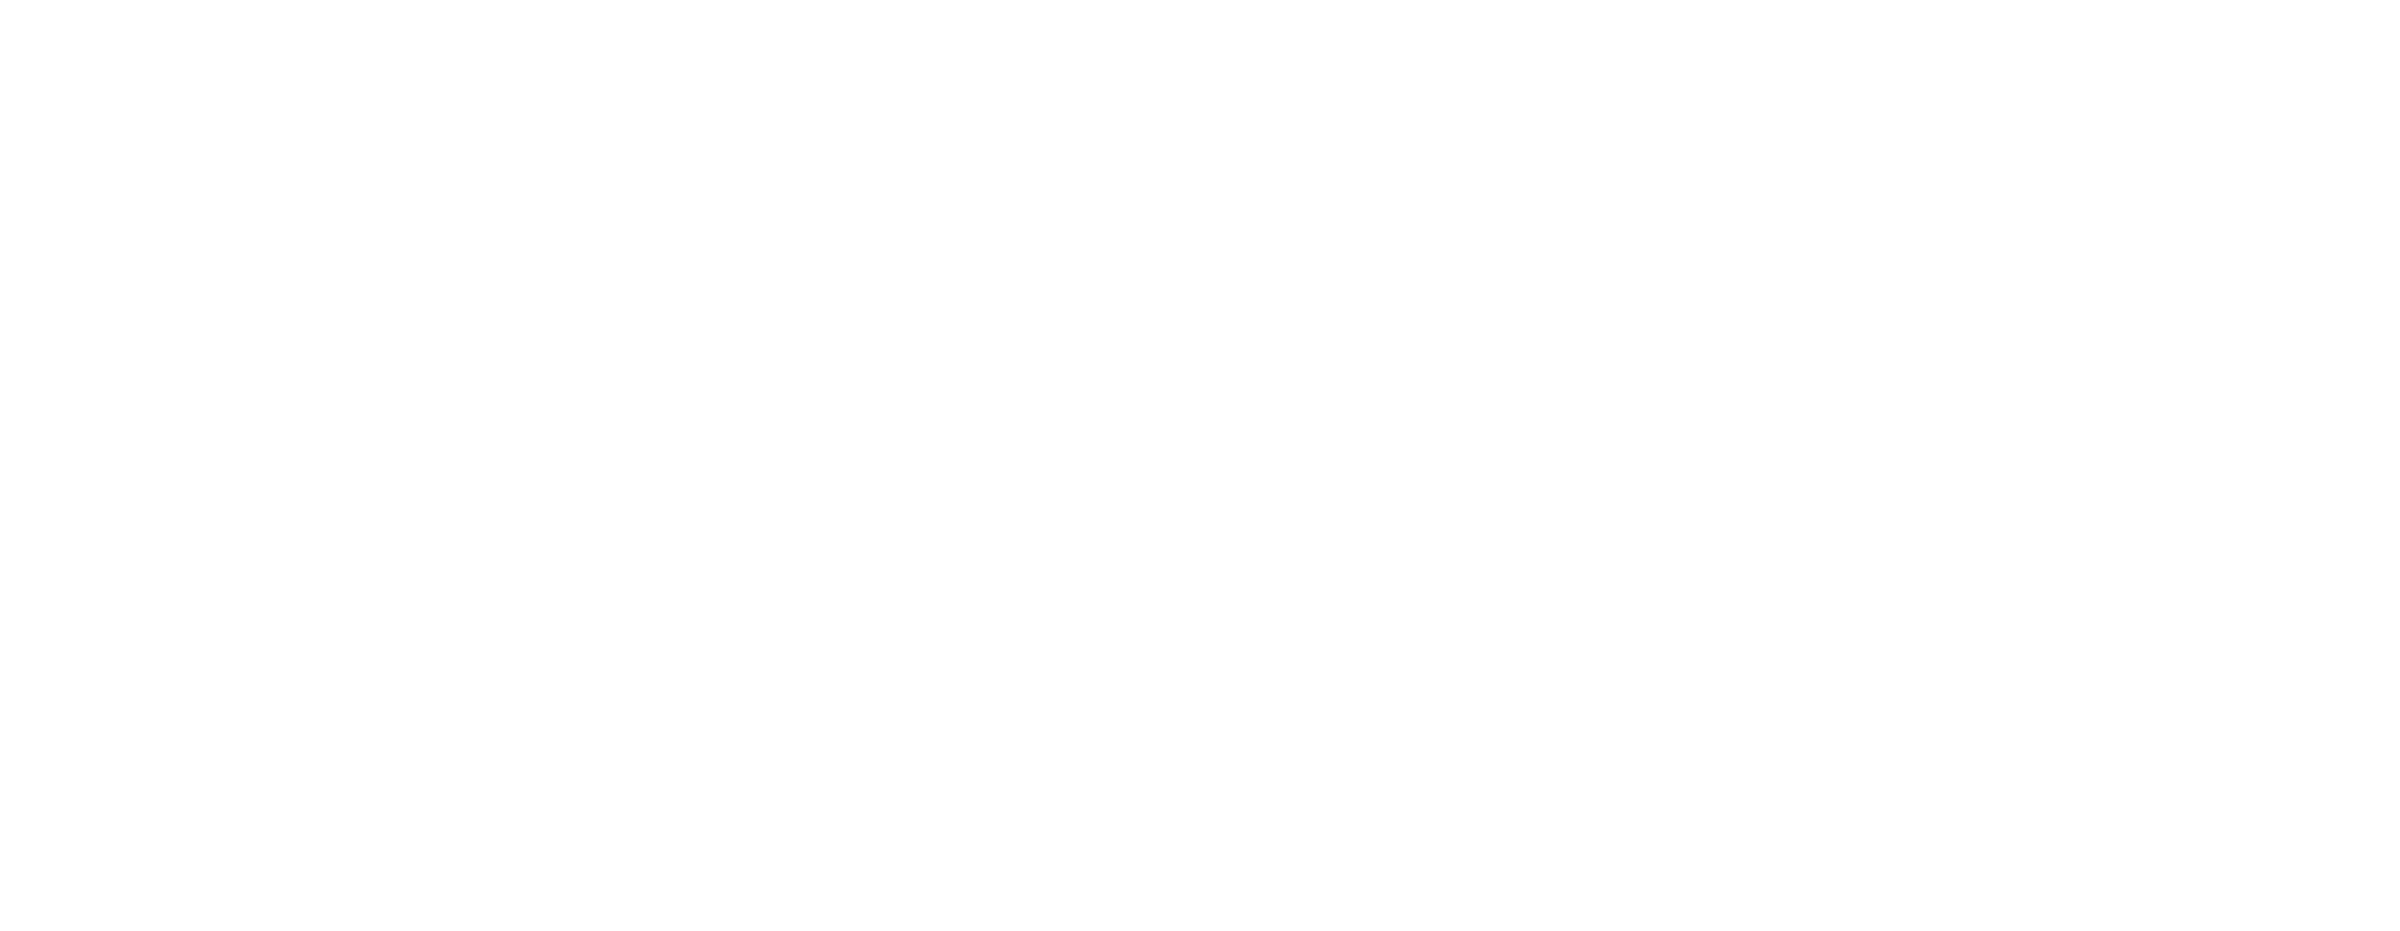 pngkit_huffington-post-logo-png_872297